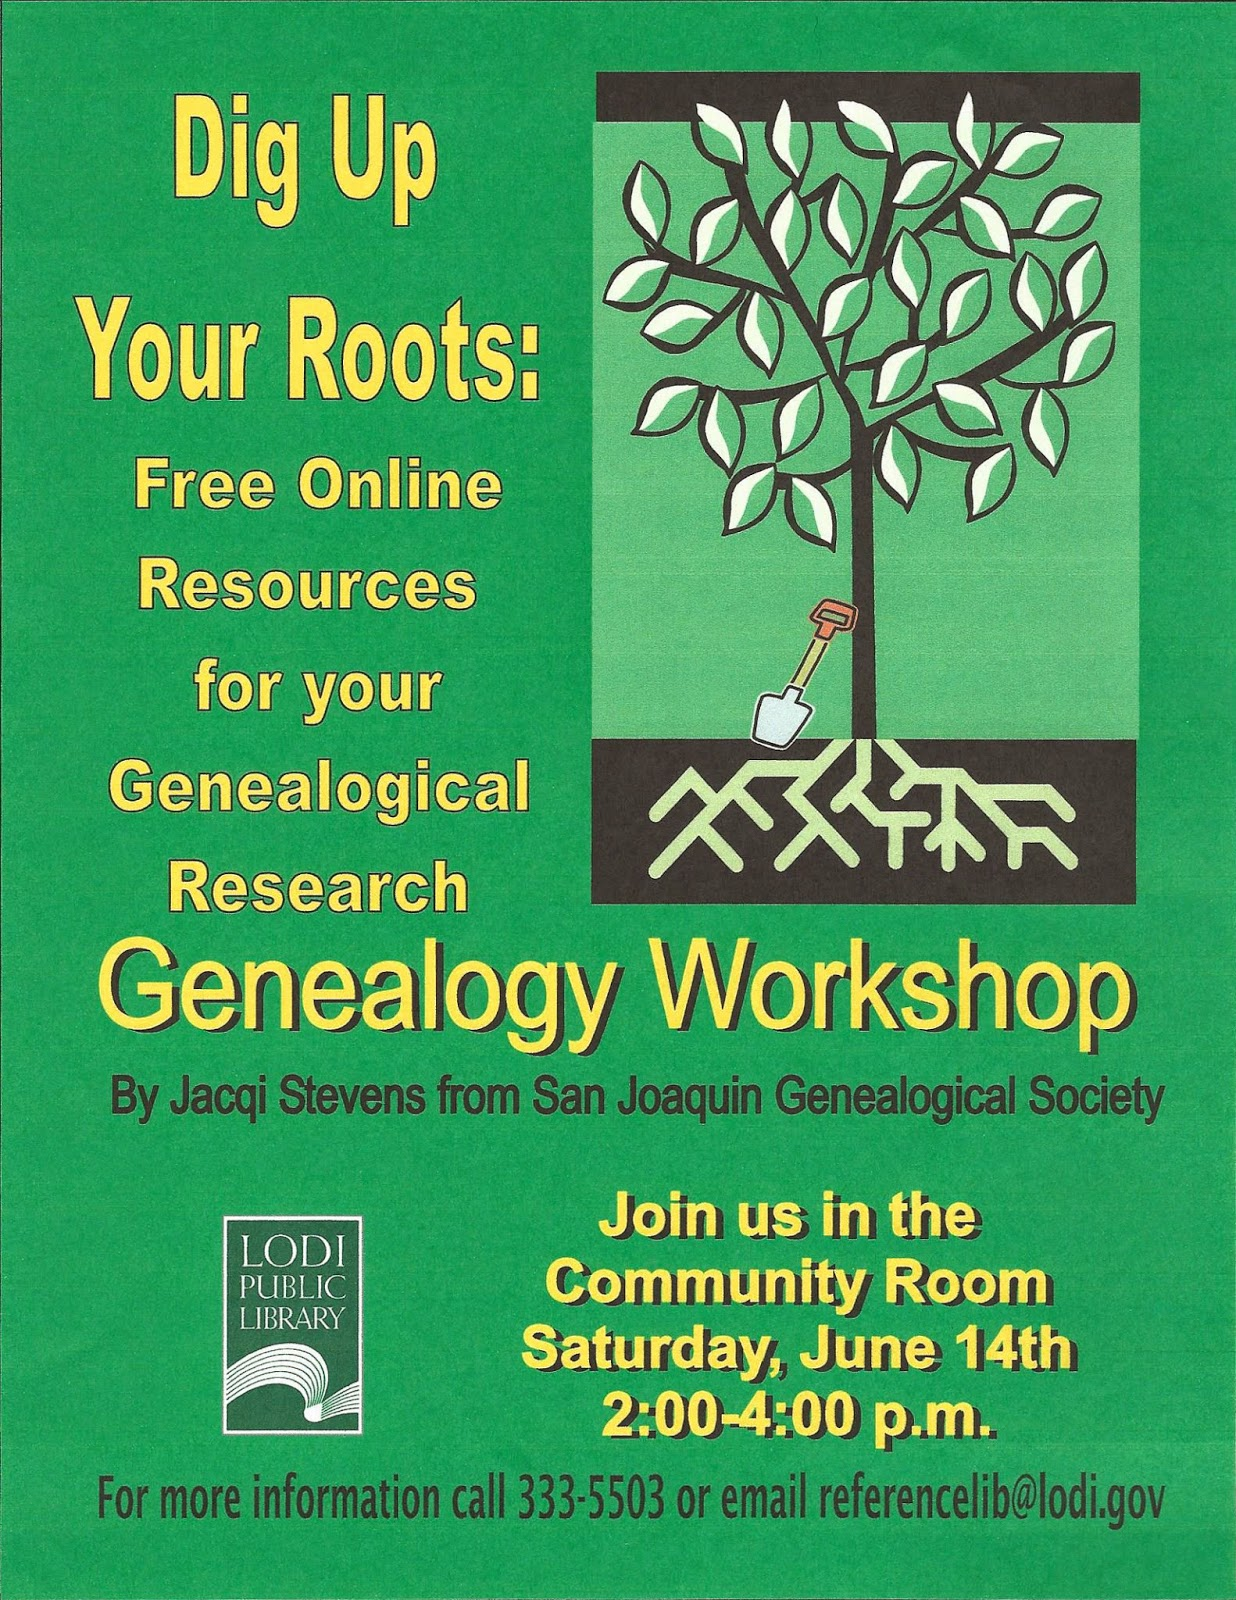 Lodi Public Library collaborates with the San Joaquin Genealogical Society to provide beginners workshops for family history research